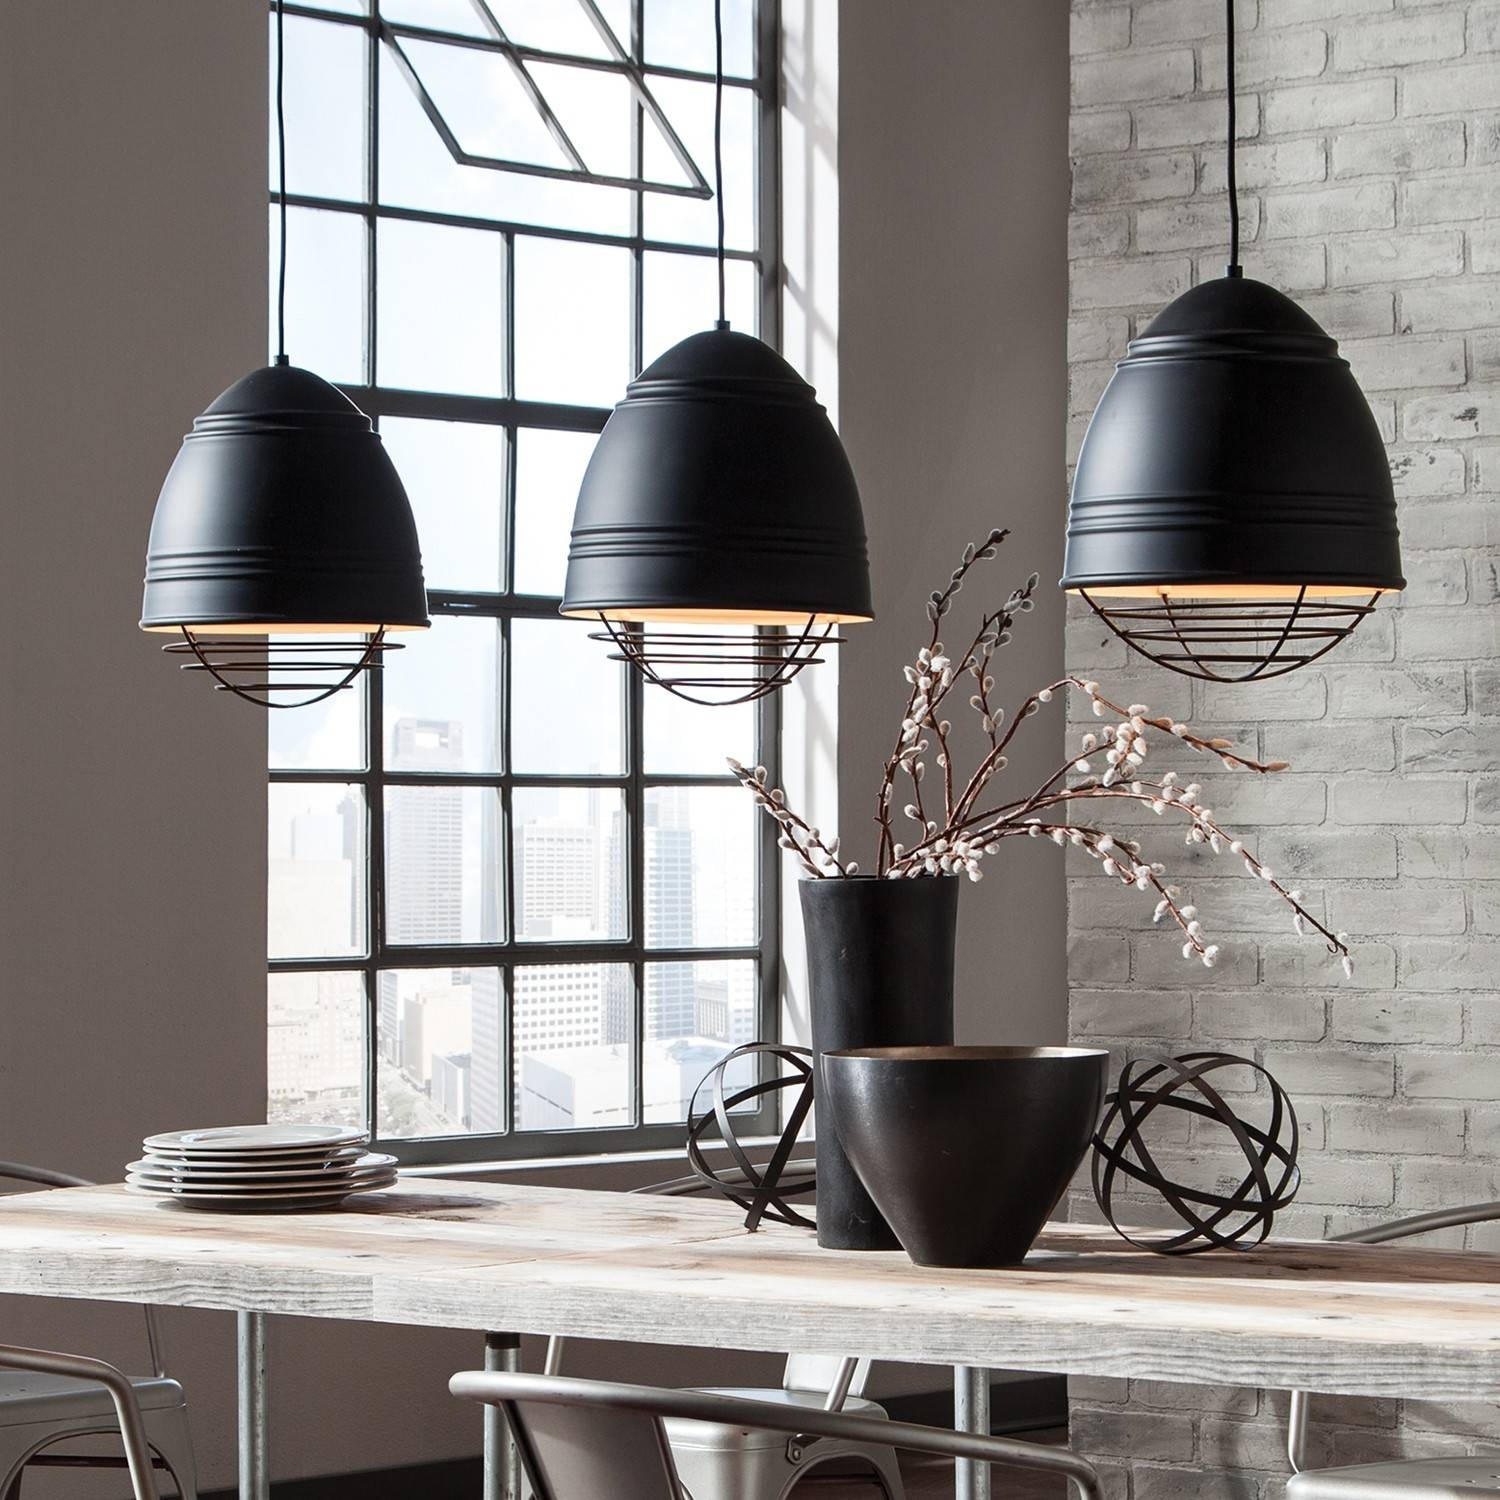 Pendant Lights For A Kitchen Island | Design Necessities Lighting throughout Oversized Pendants (Image 12 of 15)